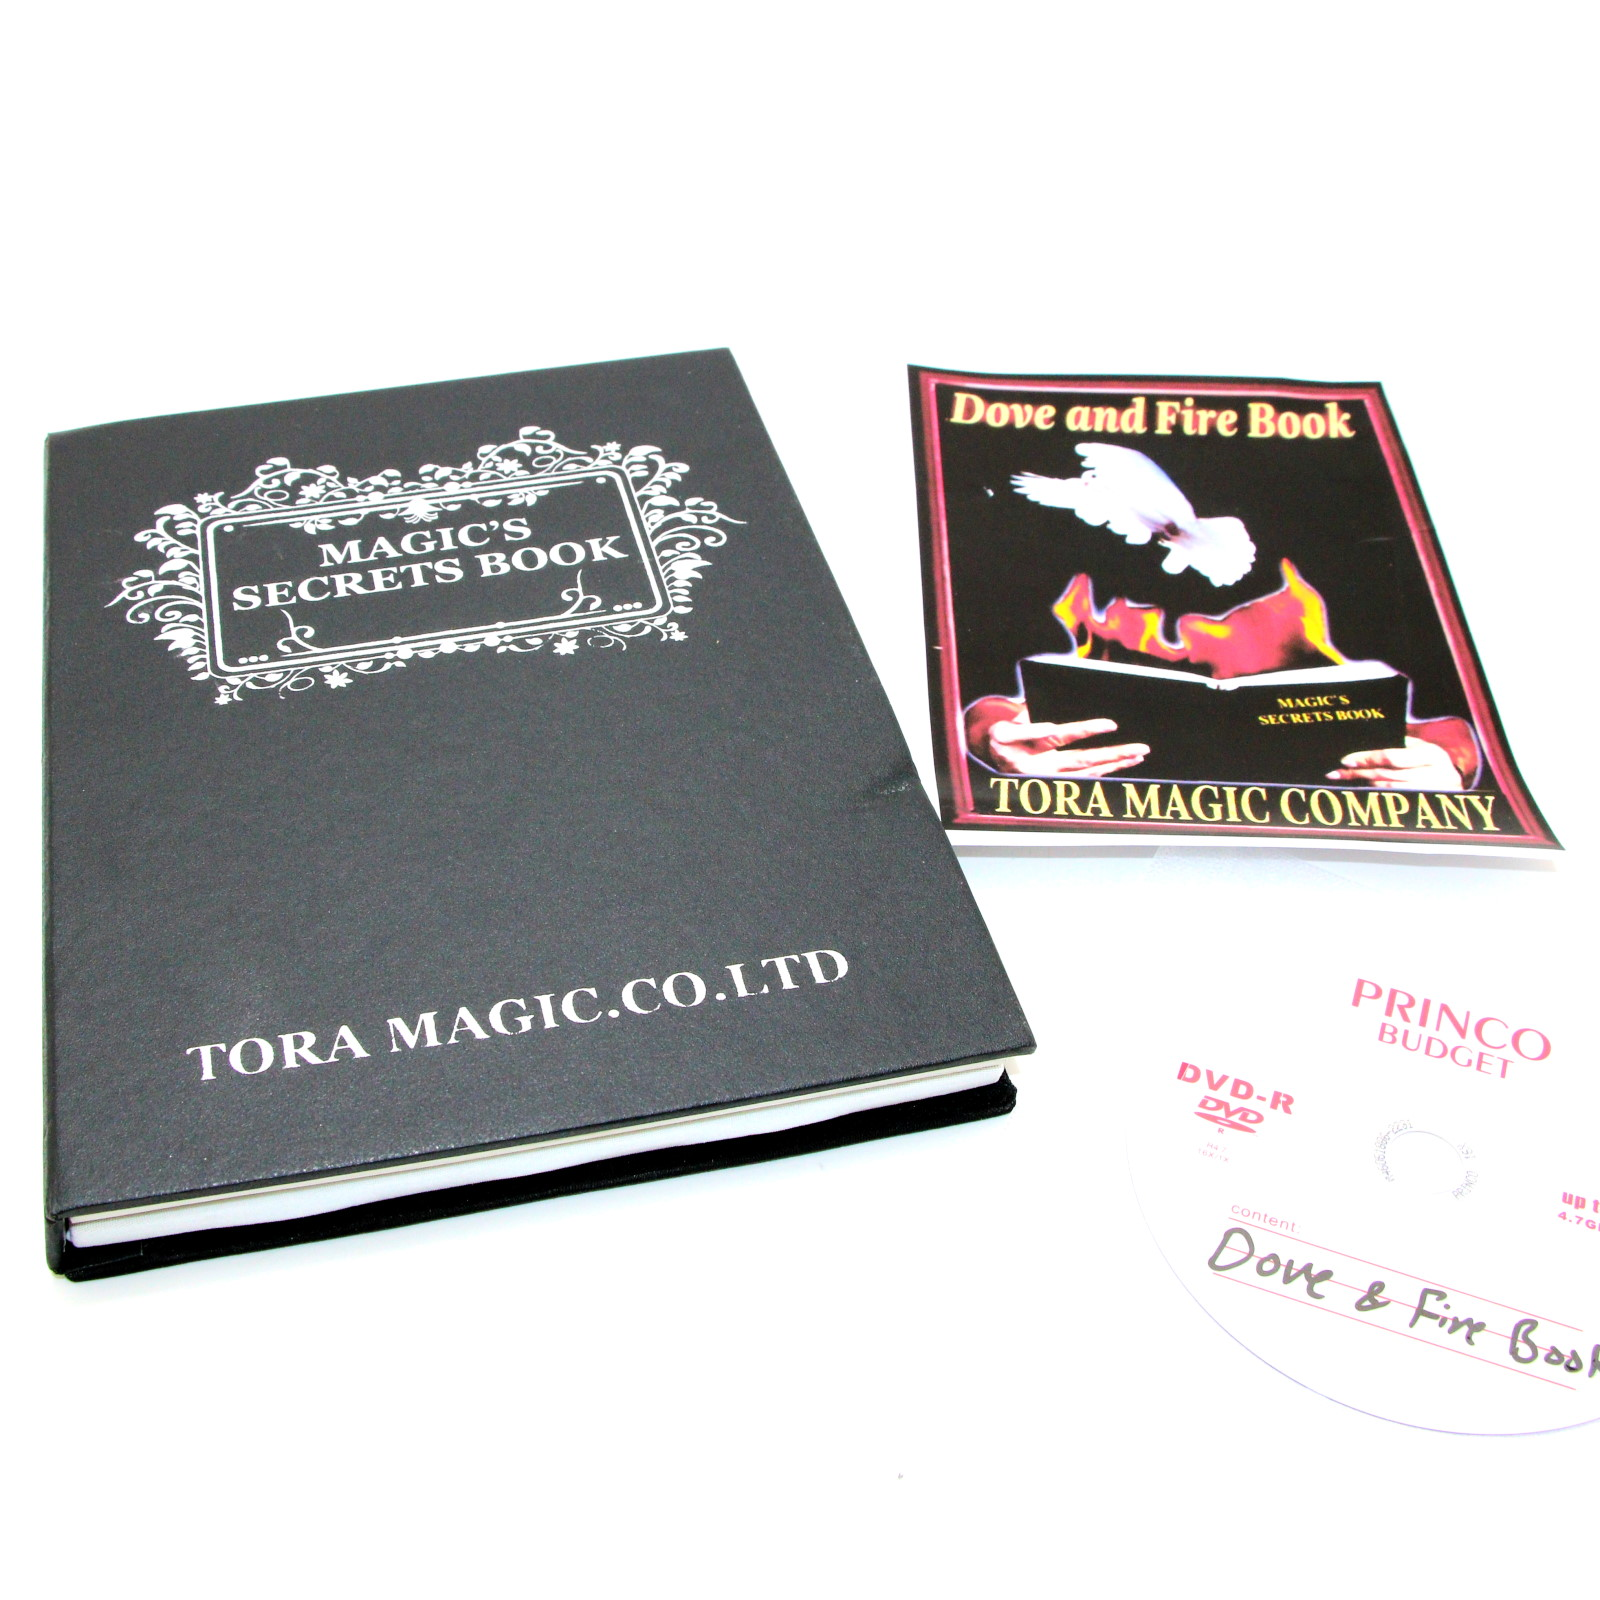 Dove and Fire Book by Tora Magic Company